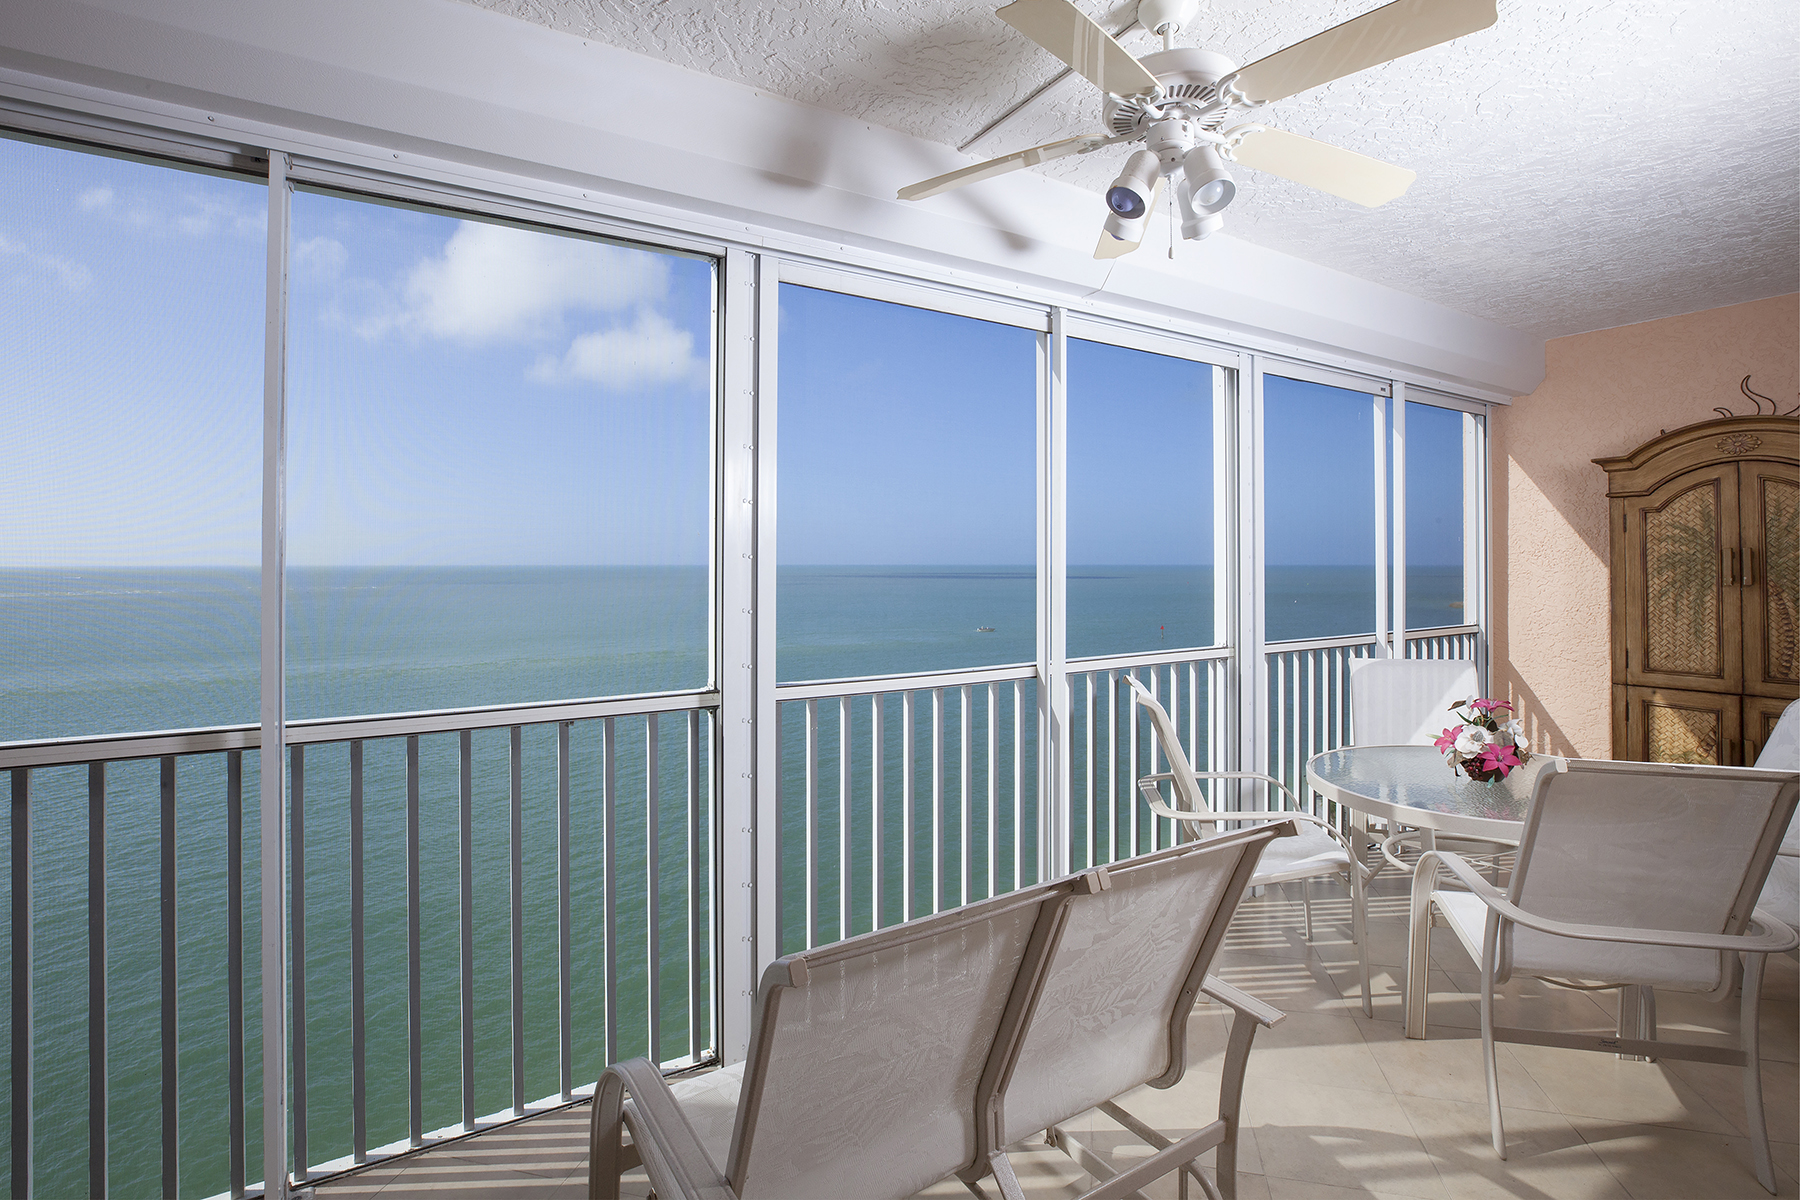 Condominium for Sale at MARCO ISLAND 1020 S Collier Blvd 704, Marco Island, Florida, 34145 United States